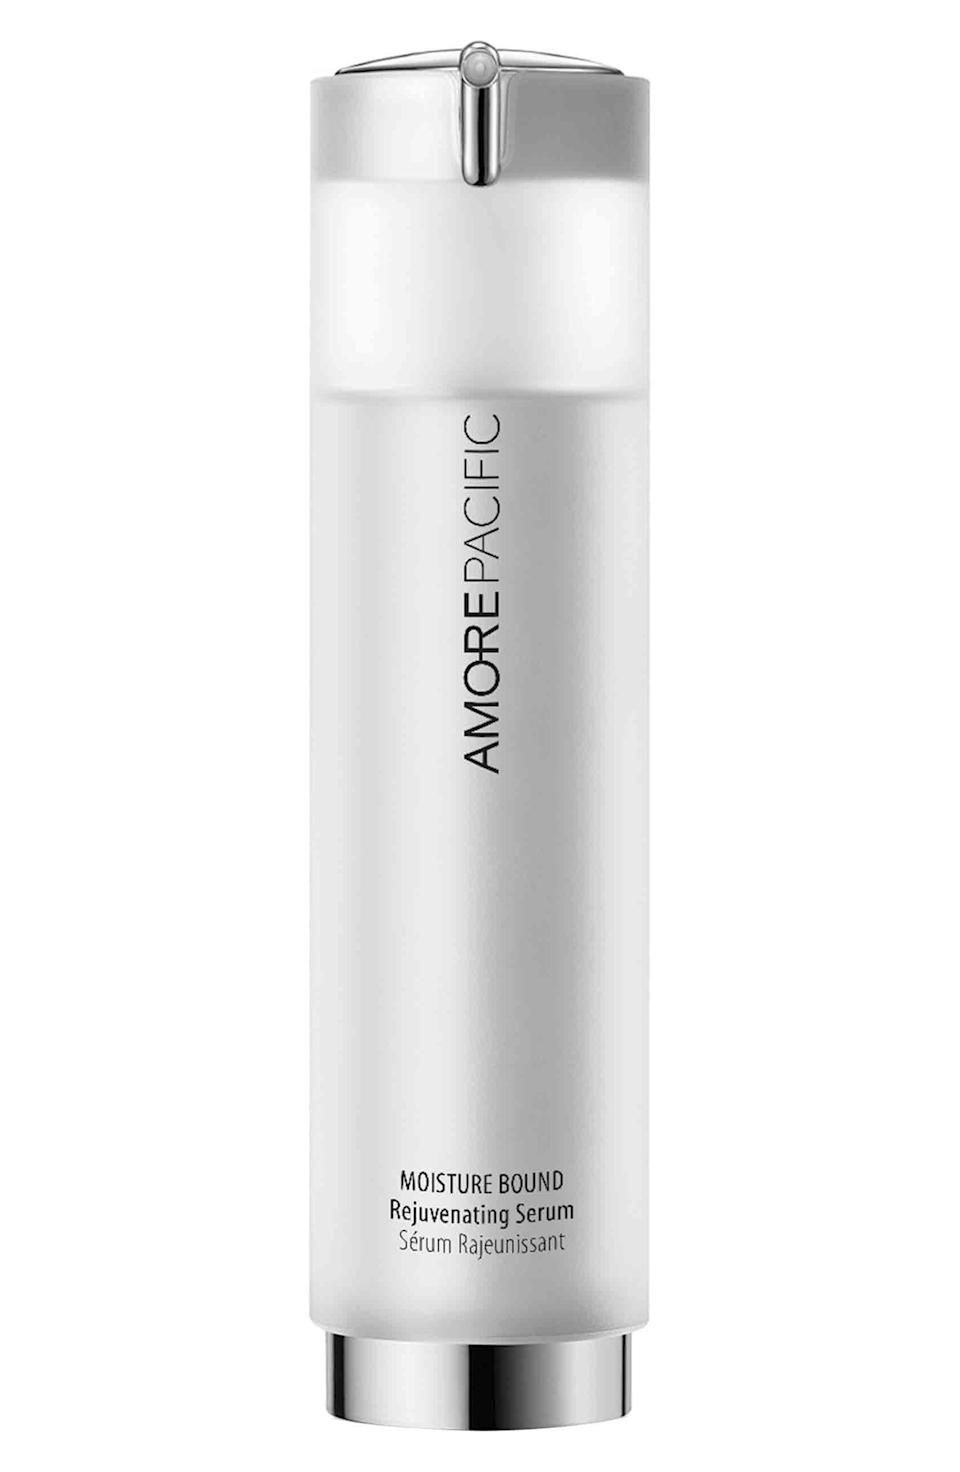 """<p><strong>AMOREPACIFIC</strong></p><p>nordstrom.com</p><p><strong>$100.00</strong></p><p><a href=""""https://go.redirectingat.com?id=74968X1596630&url=https%3A%2F%2Fwww.nordstrom.com%2Fs%2Famorepacific-moisture-bound-rejuvenating-serum%2F3291038&sref=https%3A%2F%2Fwww.harpersbazaar.com%2Fbeauty%2Fskin-care%2Fg37060038%2Fbest-korean-skin-care-products%2F"""" rel=""""nofollow noopener"""" target=""""_blank"""" data-ylk=""""slk:Shop Now"""" class=""""link rapid-noclick-resp"""">Shop Now</a></p><p>Amorepacific has roots dating back to the 1930s, and their products are still some of the most highly sought-after to this day. This lightweight serum plumps up fine lines, hydrates, and fortifies skin with continued use. </p>"""